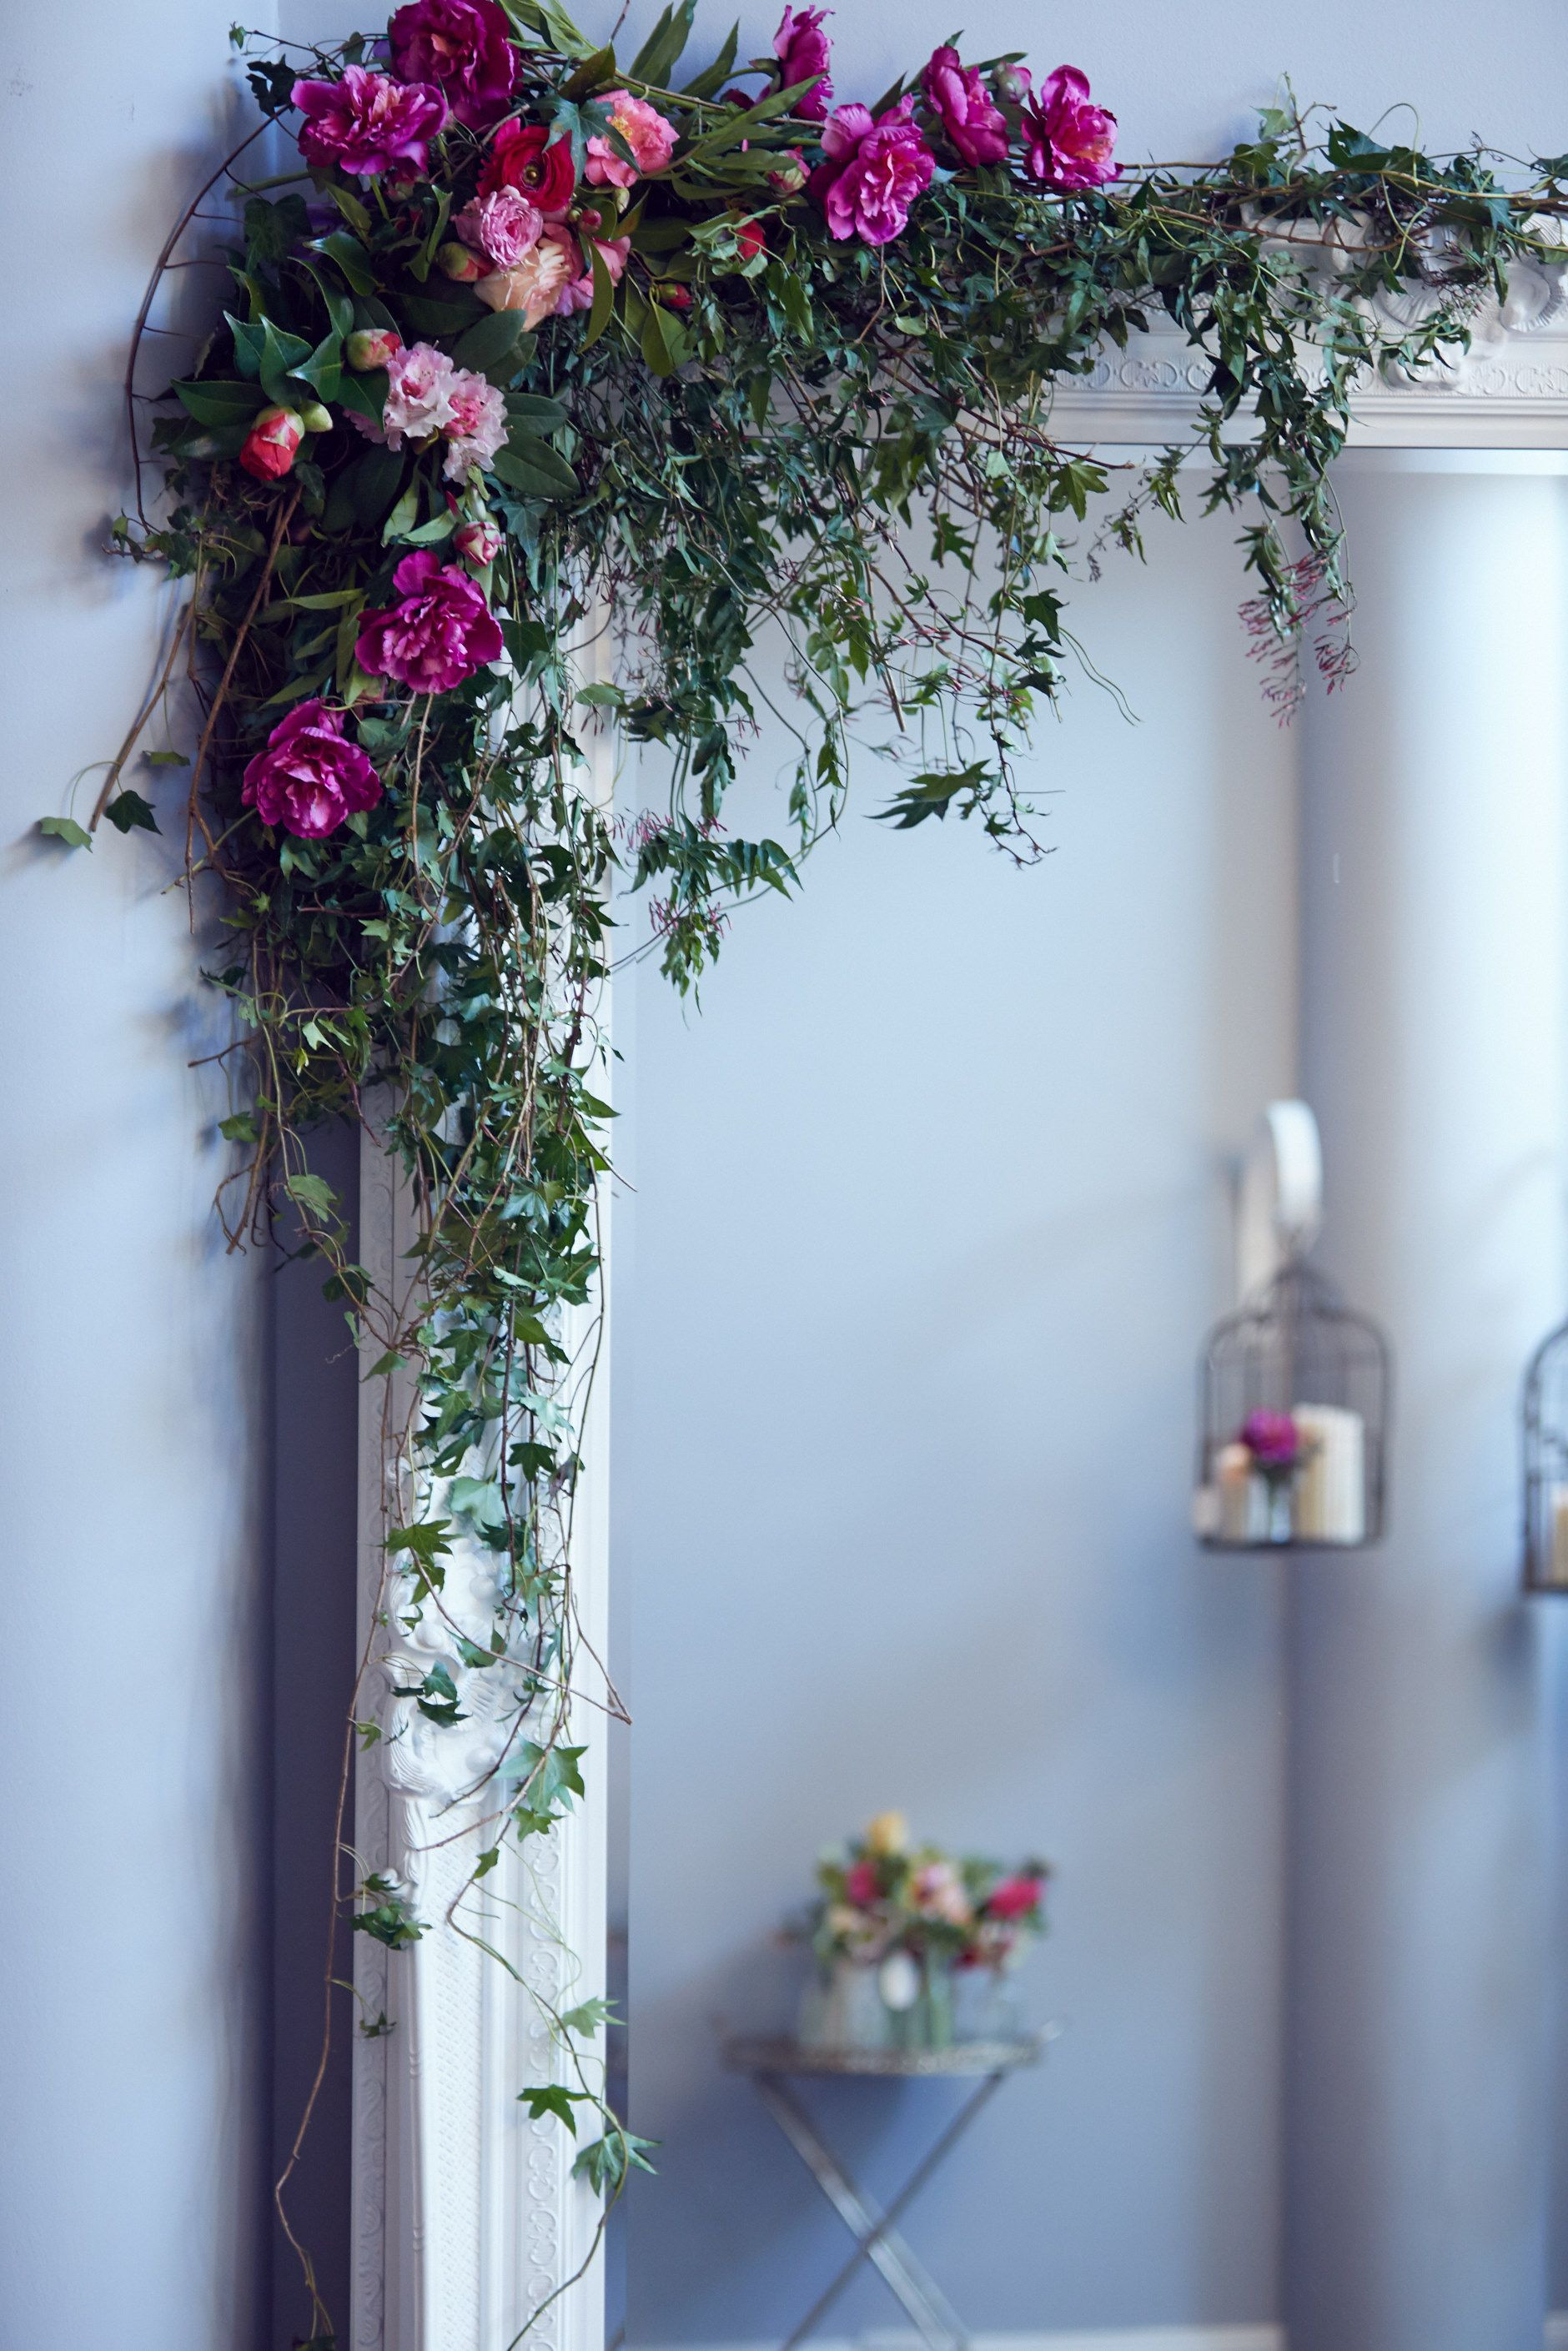 25 attractive Rent Vases for Wedding Centerpiece Near Me 2021 free download rent vases for wedding centerpiece near me of anna campbell forever entwined behind the scenes pinterest regarding photos credits 35mm wedding photography decor style by anna campbell diy we